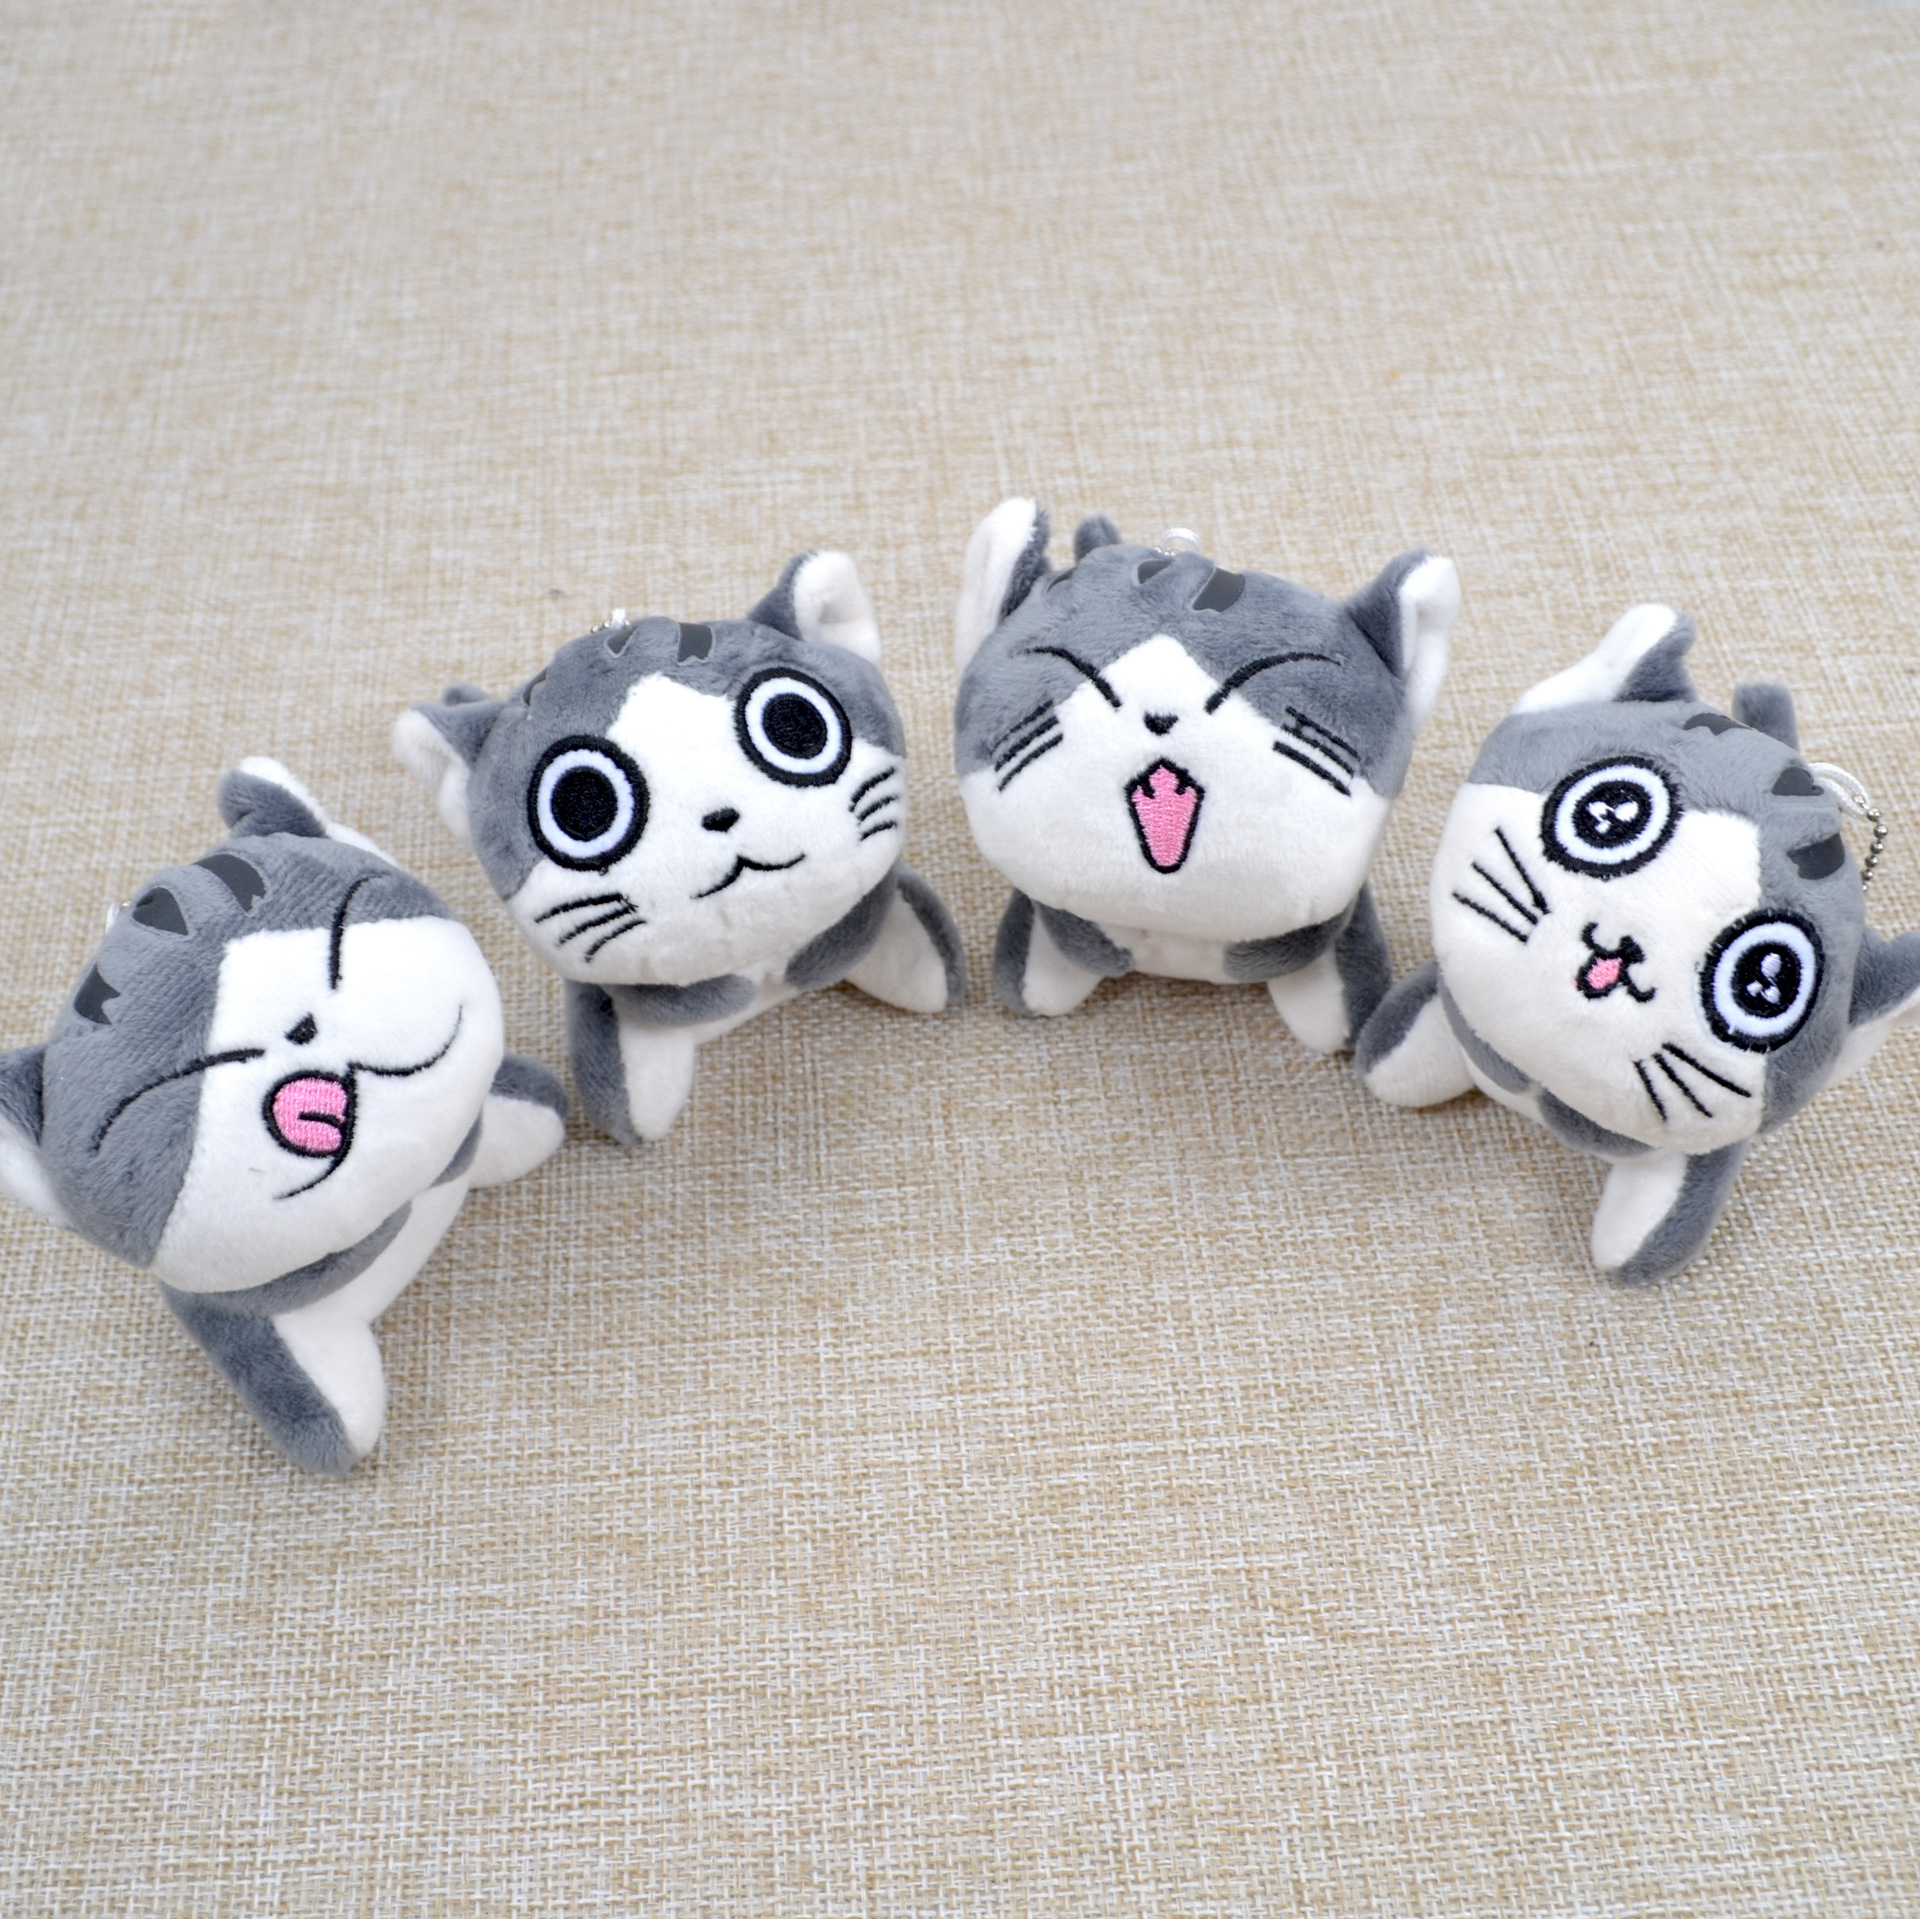 CAT Doll Bouquet Key-Chain Plush-Toy Stuffed Toys Flower Gift Sitting Kawaii Grey 9CM